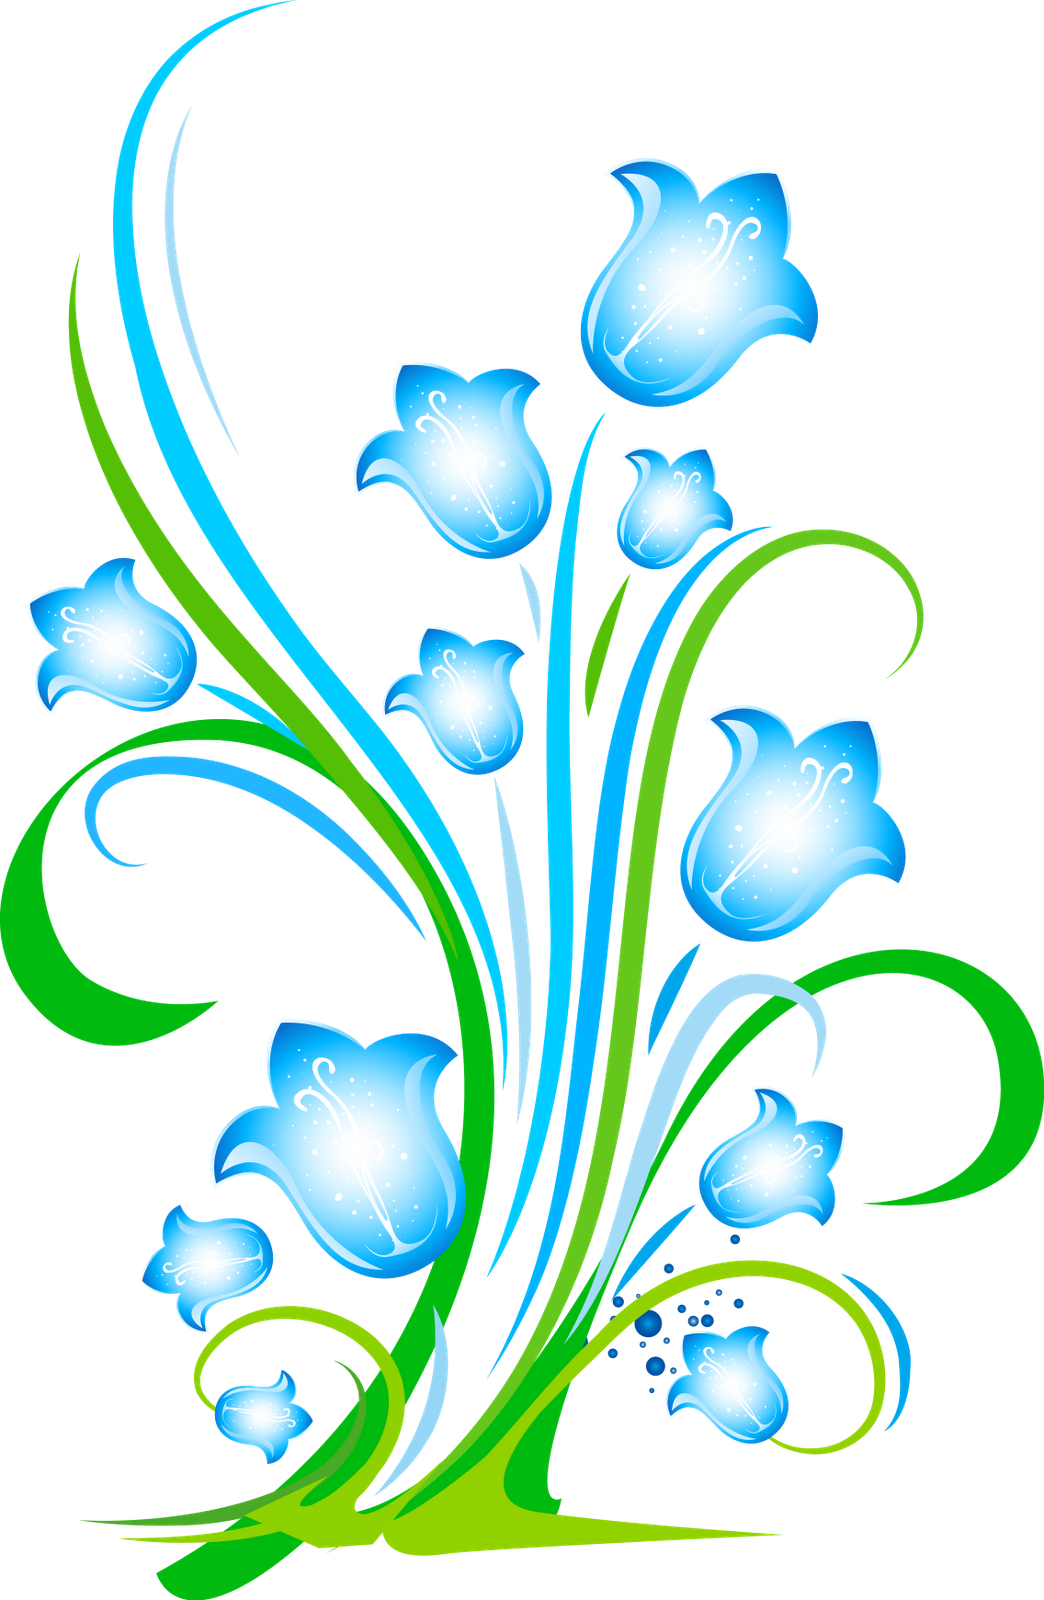 1044x1600 Flowers Vectors Png Transparent Flowers Vectors.png Images. Pluspng